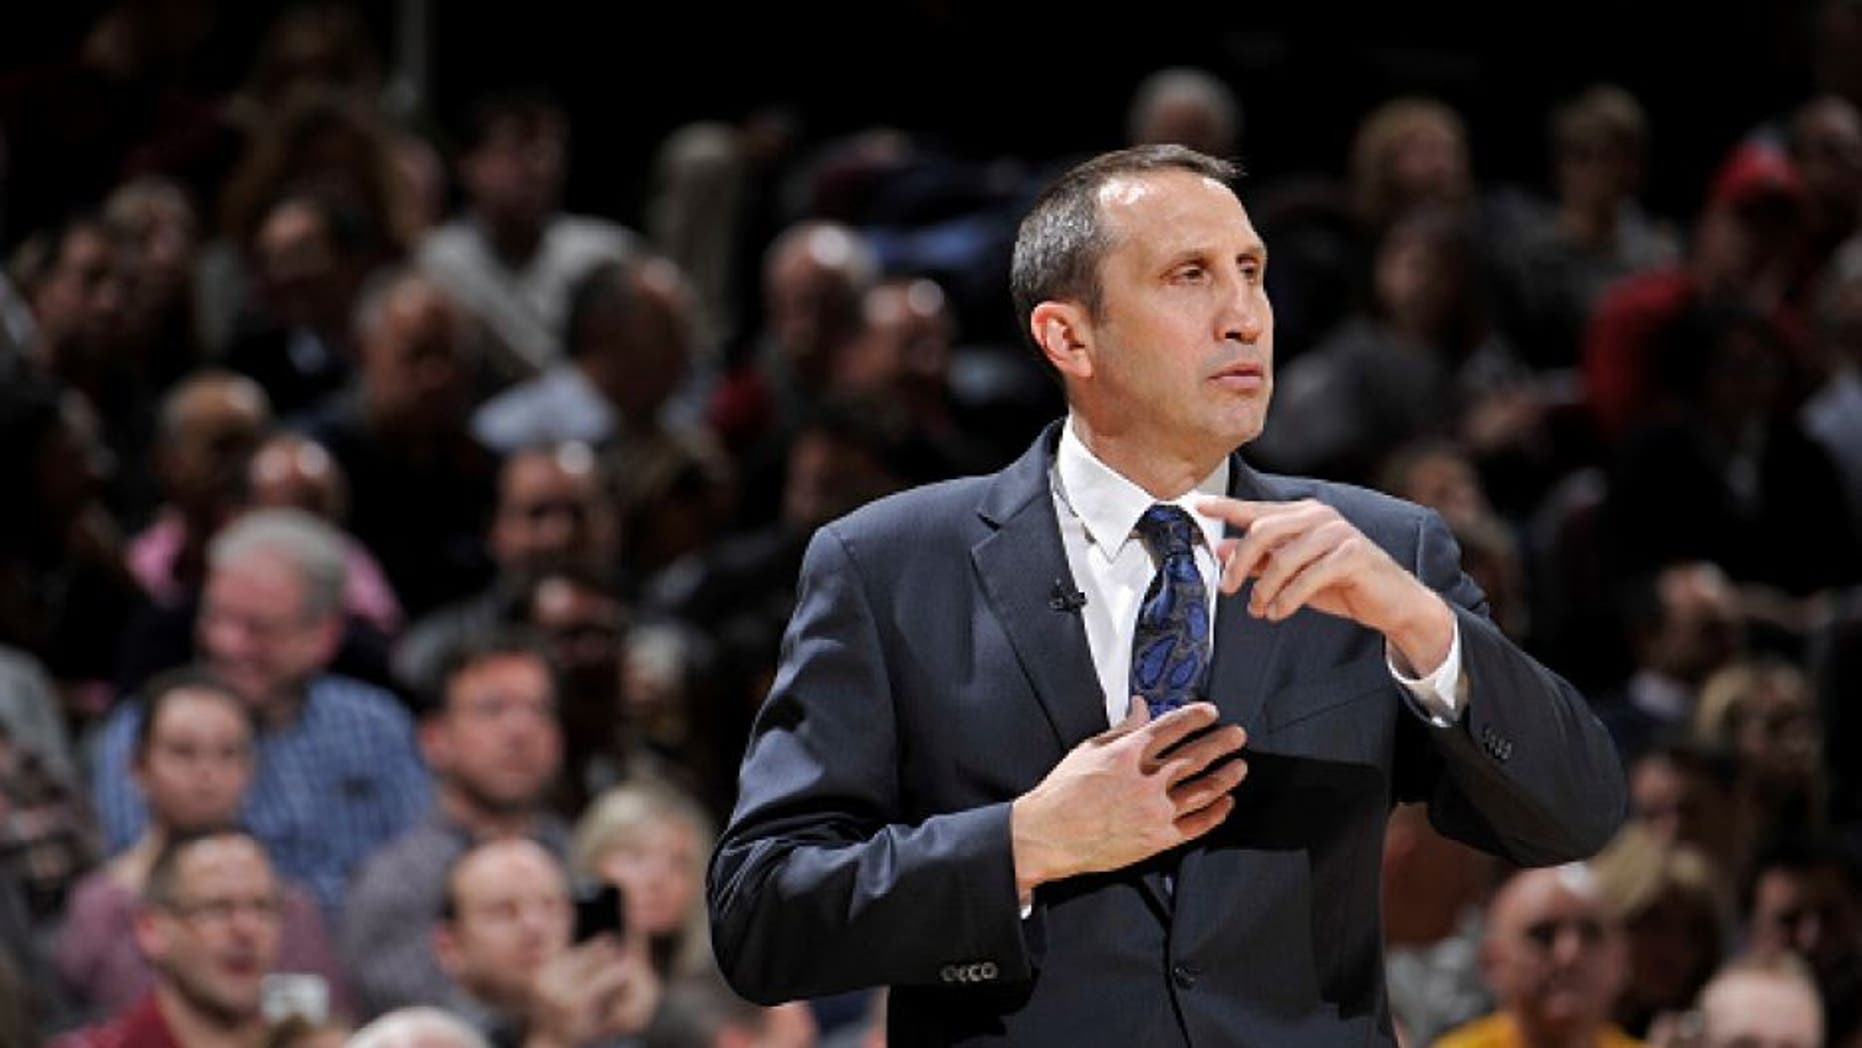 CLEVELAND, OH - JANUARY 21: David Blatt of the Cleveland Cavaliers coaches against the Los Angeles Clippers on January 21, 2016 at Quicken Loans Arena in Cleveland, Ohio. NOTE TO USER: User expressly acknowledges and agrees that, by downloading and/or using this Photograph, user is consenting to the terms and conditions of the Getty Images License Agreement. Mandatory Copyright Notice: Copyright 2016 NBAE (Photo by David Liam Kyle/NBAE via Getty Images)